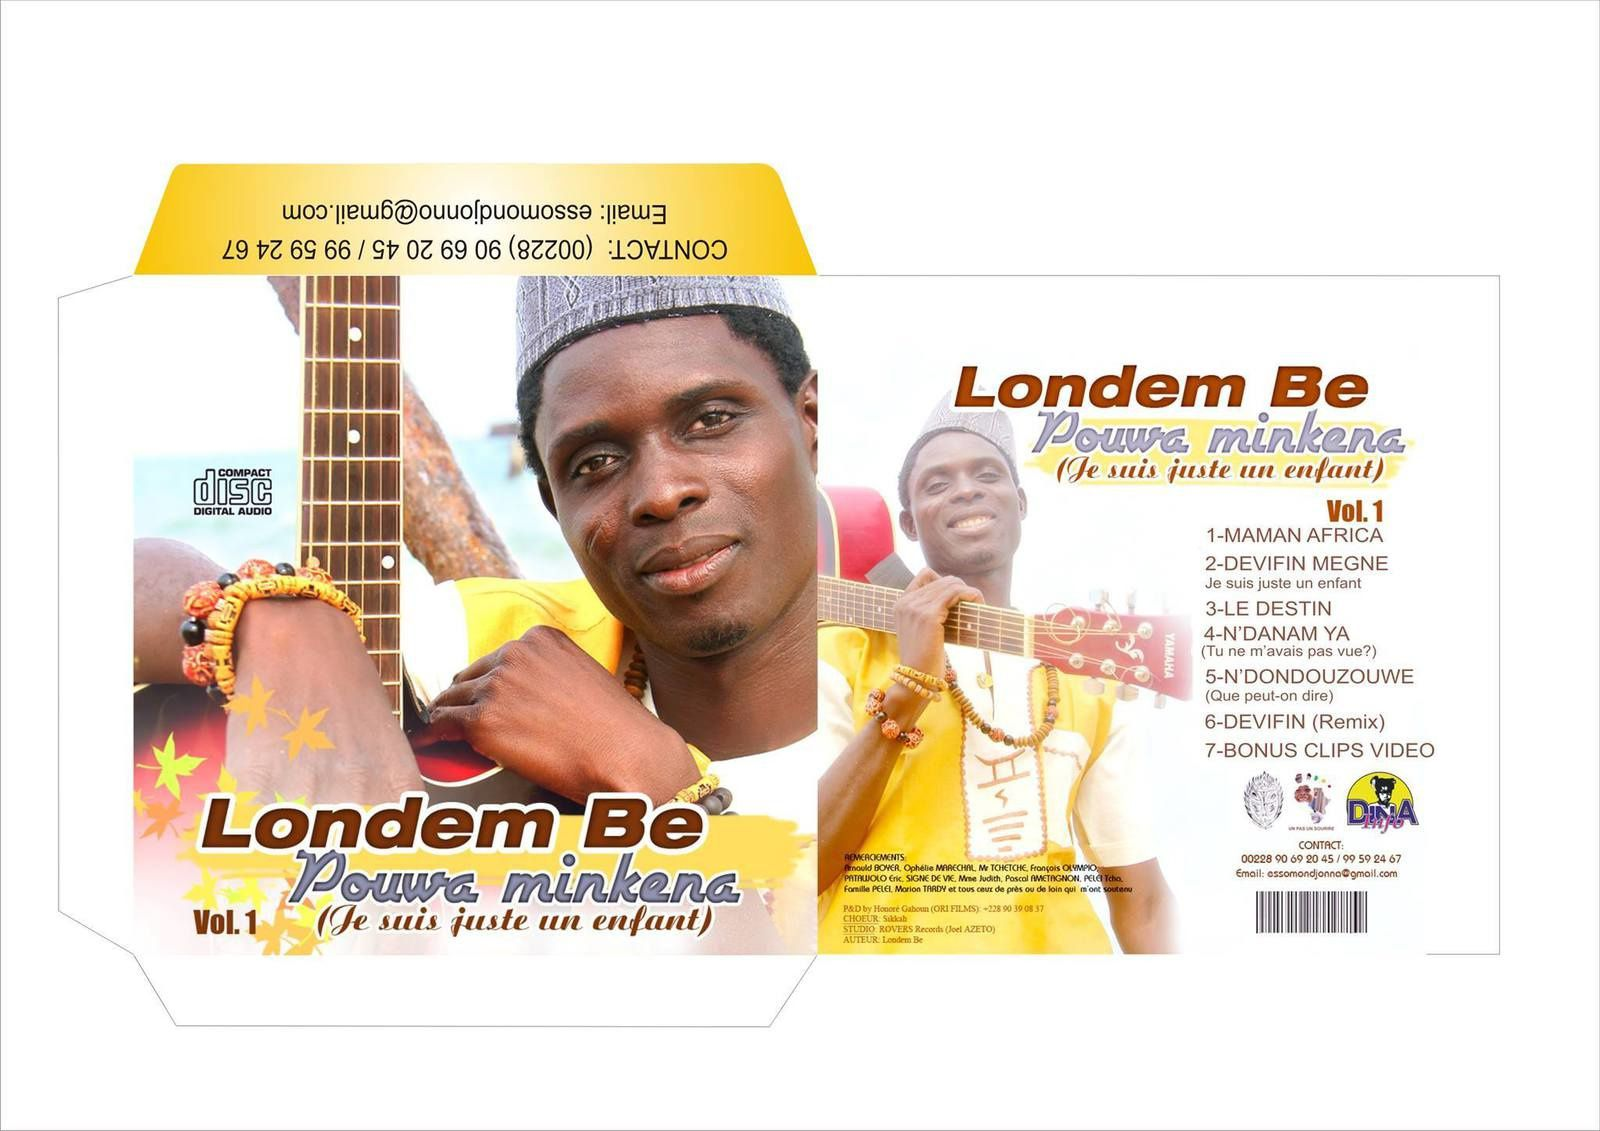 L'album de Londem Be bientôt disponible